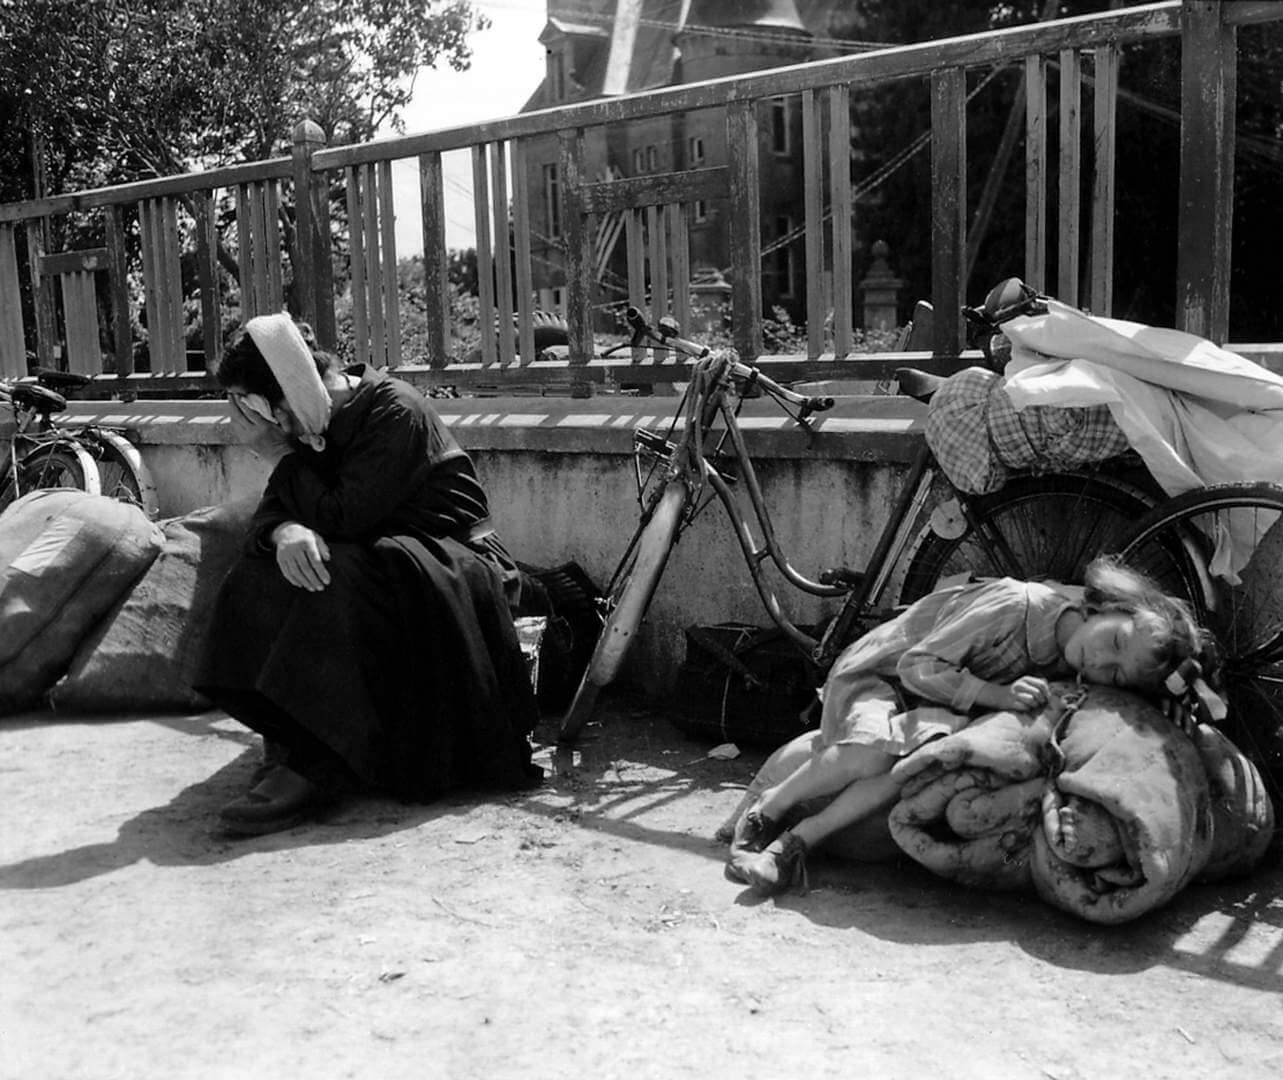 """Refugees fleeing the fighting have brought their bicycles and bundles into a school yard. 10th August 1944. A little girl is lying exhausted on a rolled blanket, while her grandmother is sitting next to her. Her white cap is a """"bachelique"""" knitted crochet. Many people from the fighting in Mortaine, just to the south have been seeking refuge in Saint-Pois during August 1944. Mortaine was the final battle for Nornandy. Saint-Pois, Normandy, France. (Photo by Galerie Bilderwelt/Getty Images)"""